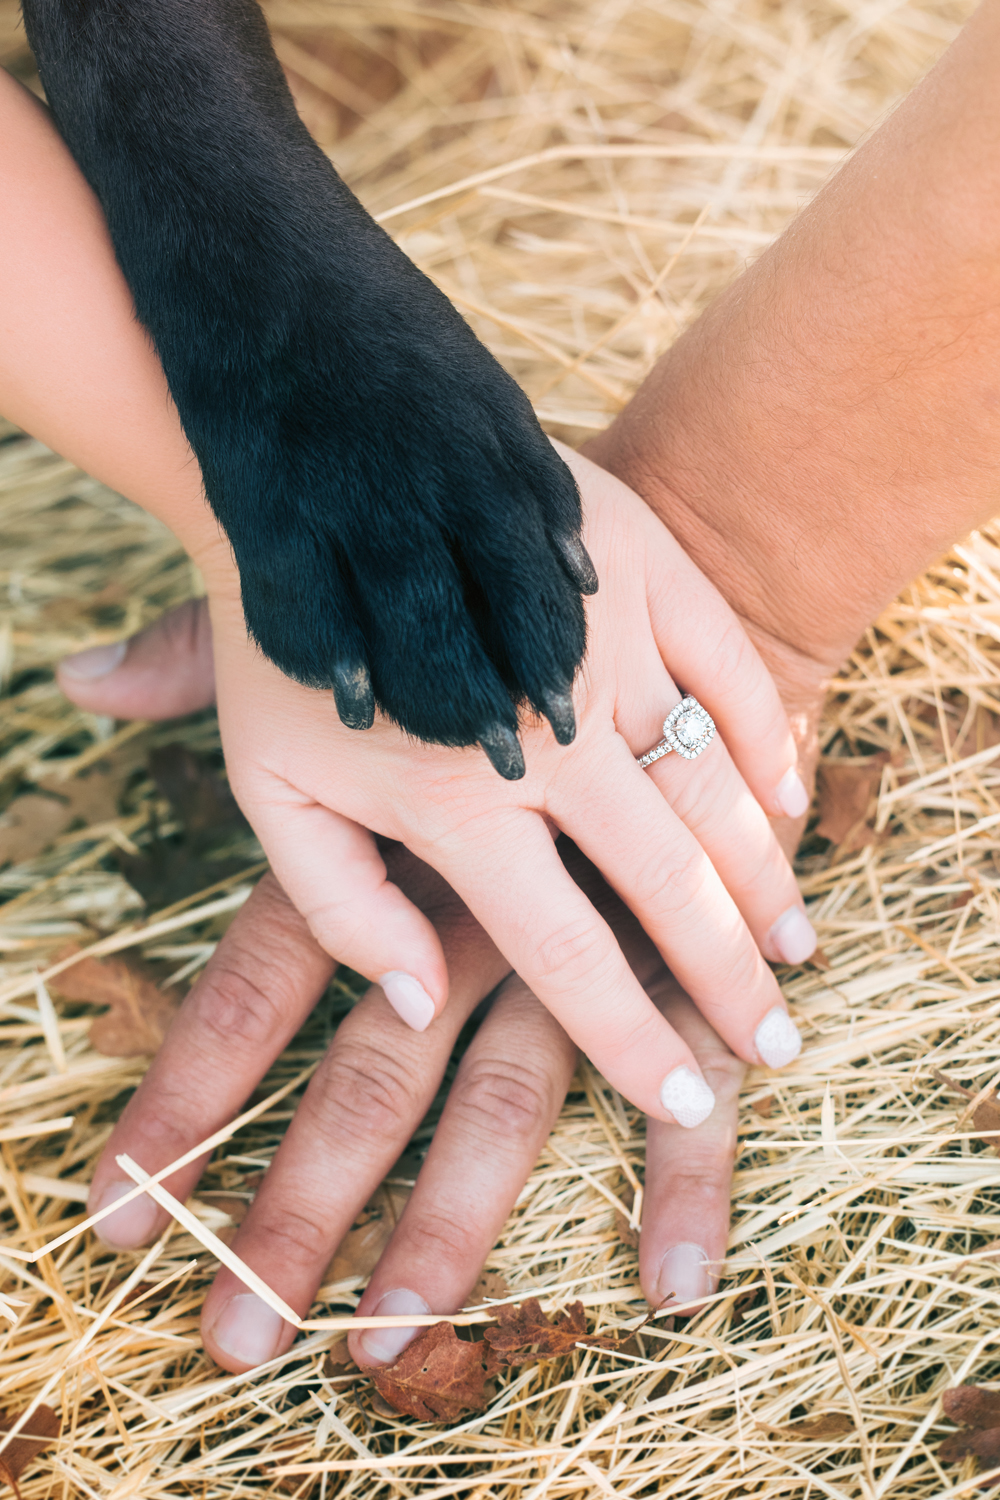 Engagement-with-Dog-photography-Upper-Bidwel-Park-Chico-3-2.jpg